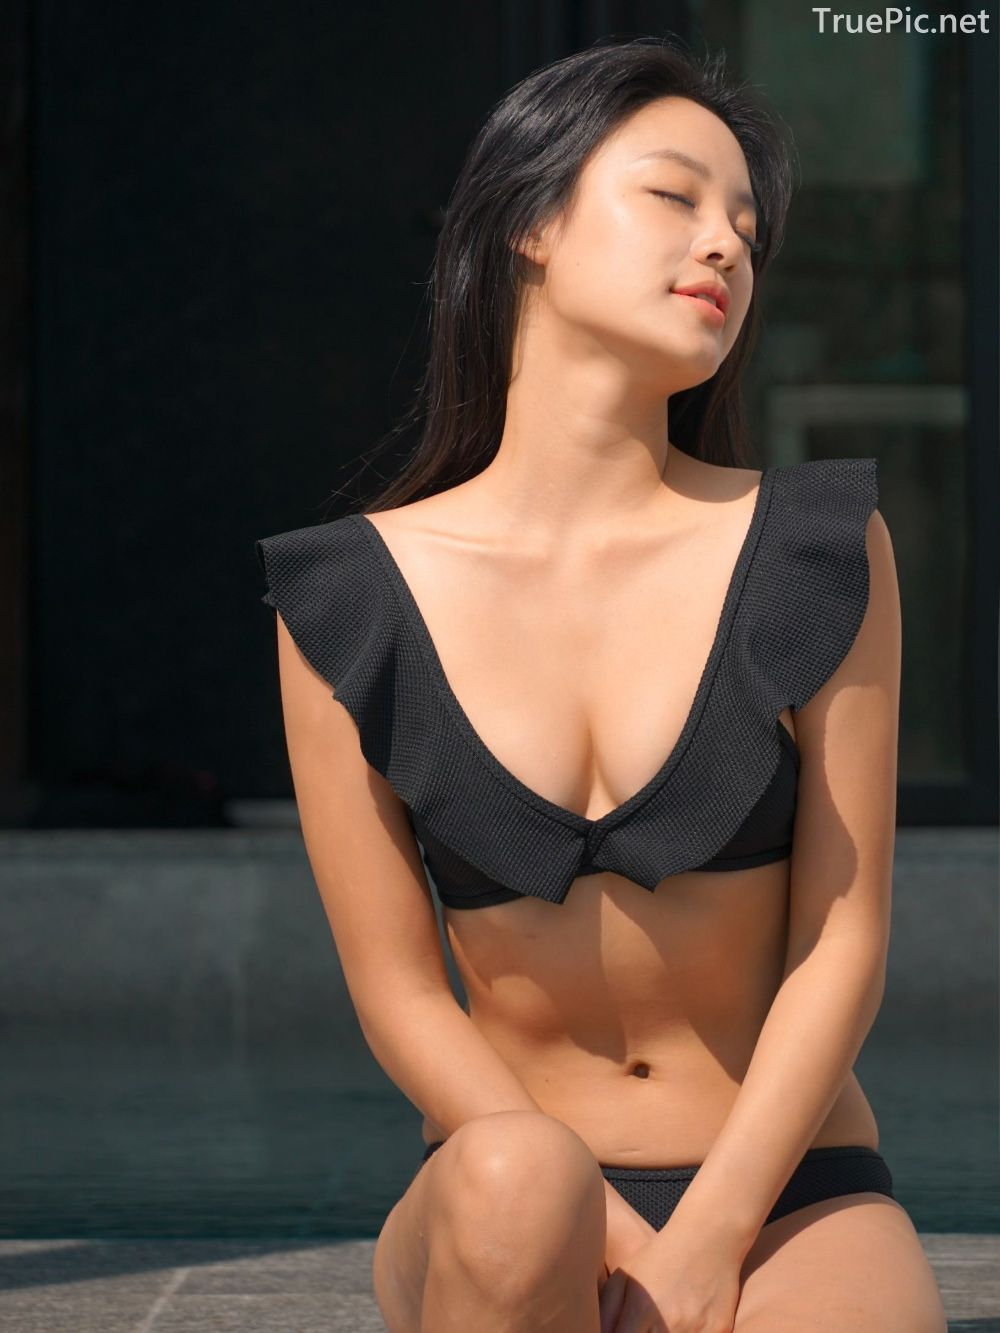 Korean model and fashion - Choi Seok Yeong - Alice Black and Blue Bikini - Picture 8